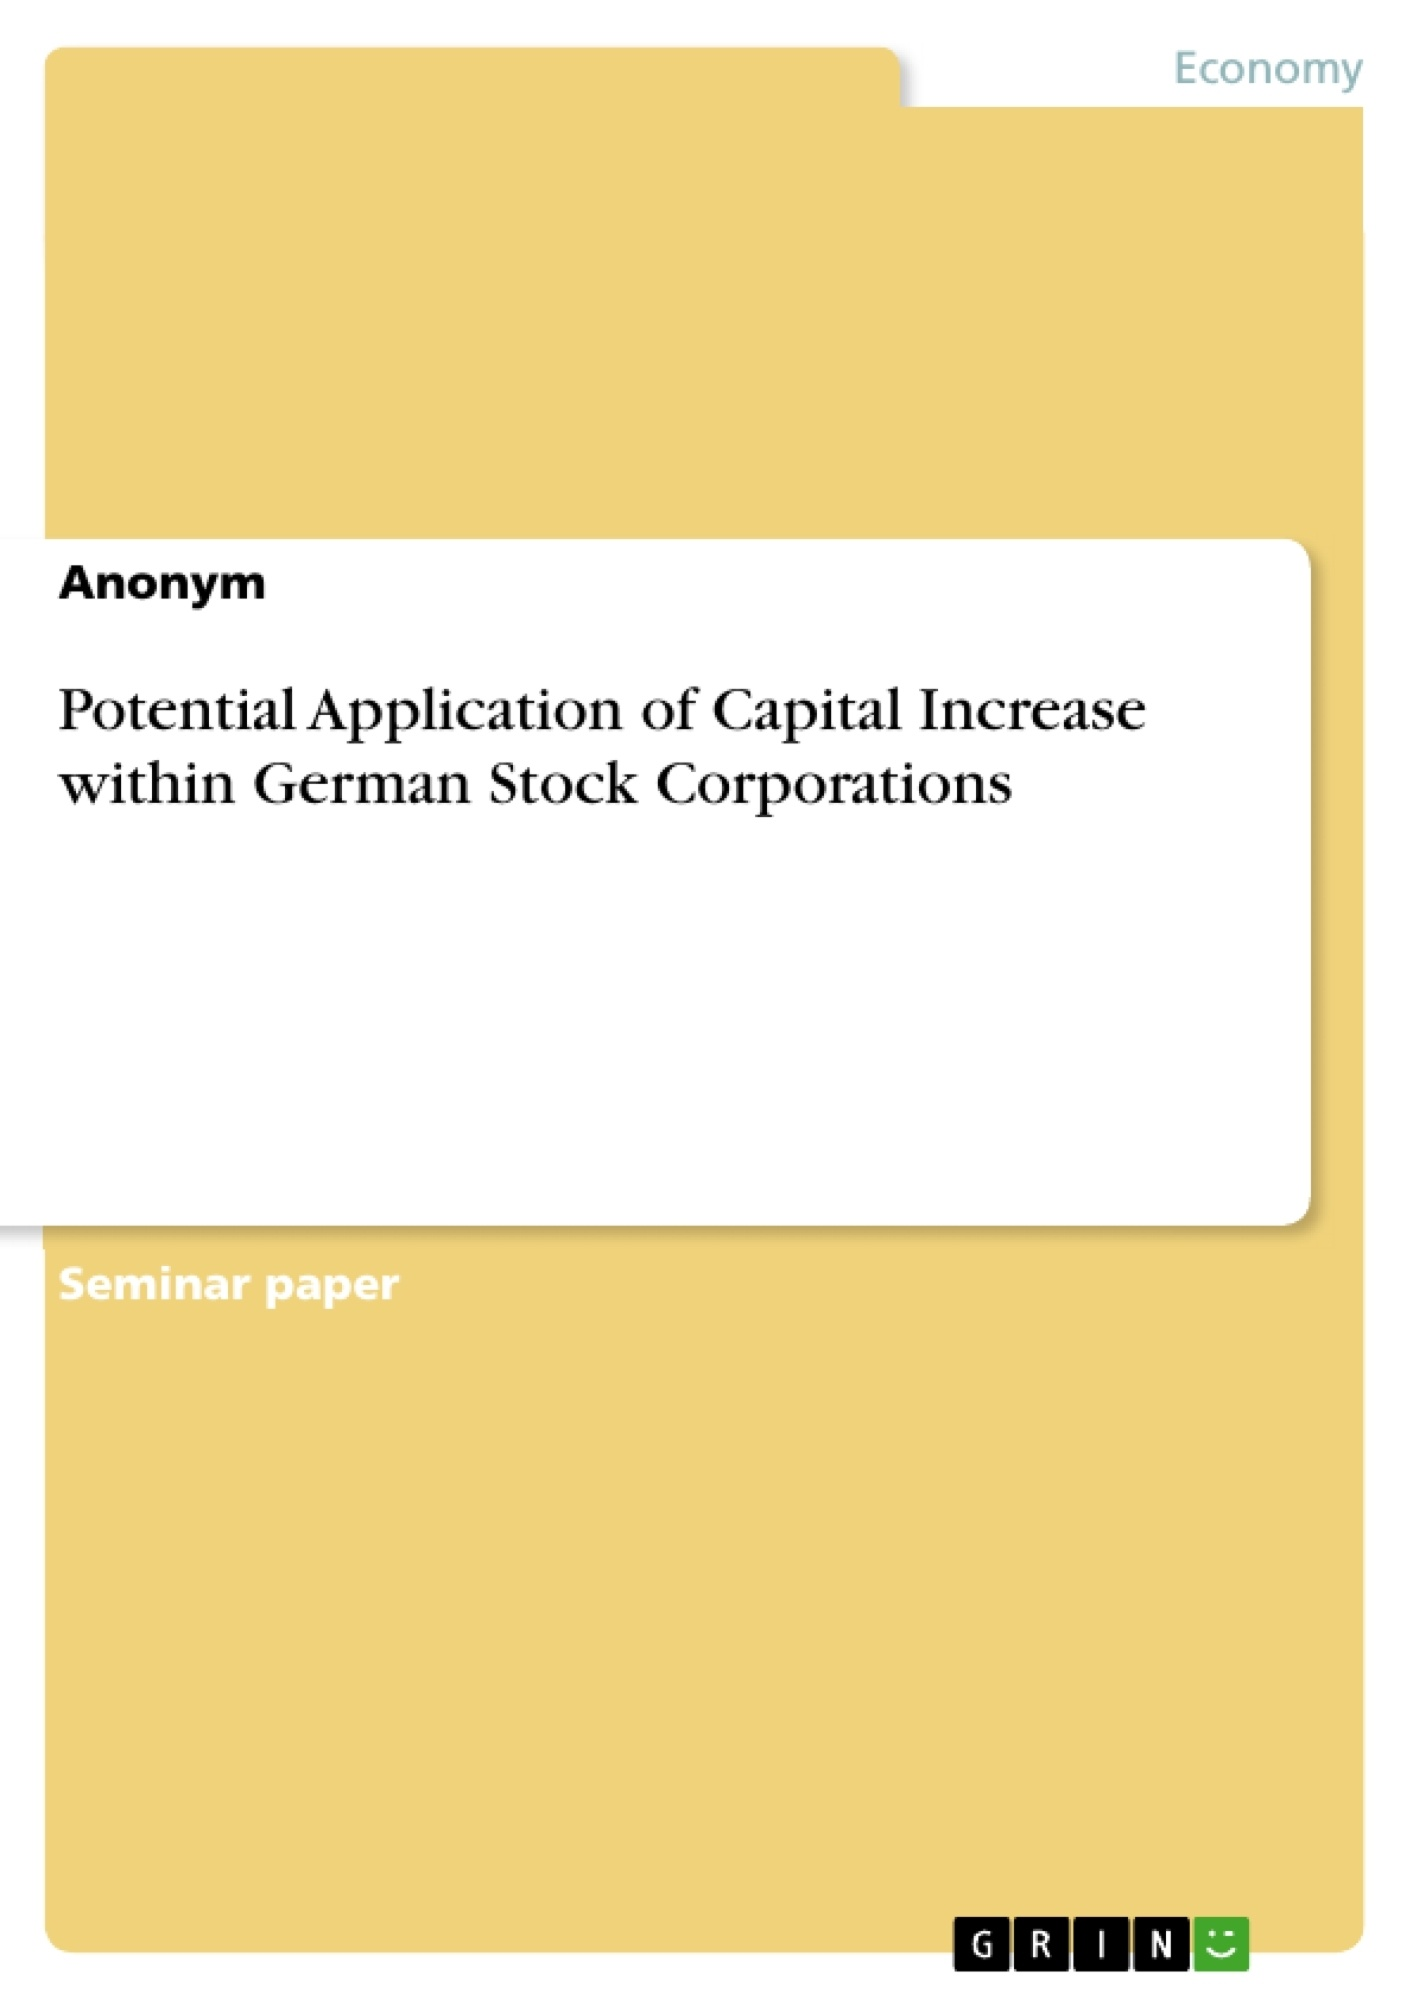 Title: Potential Application of Capital Increase within German Stock Corporations